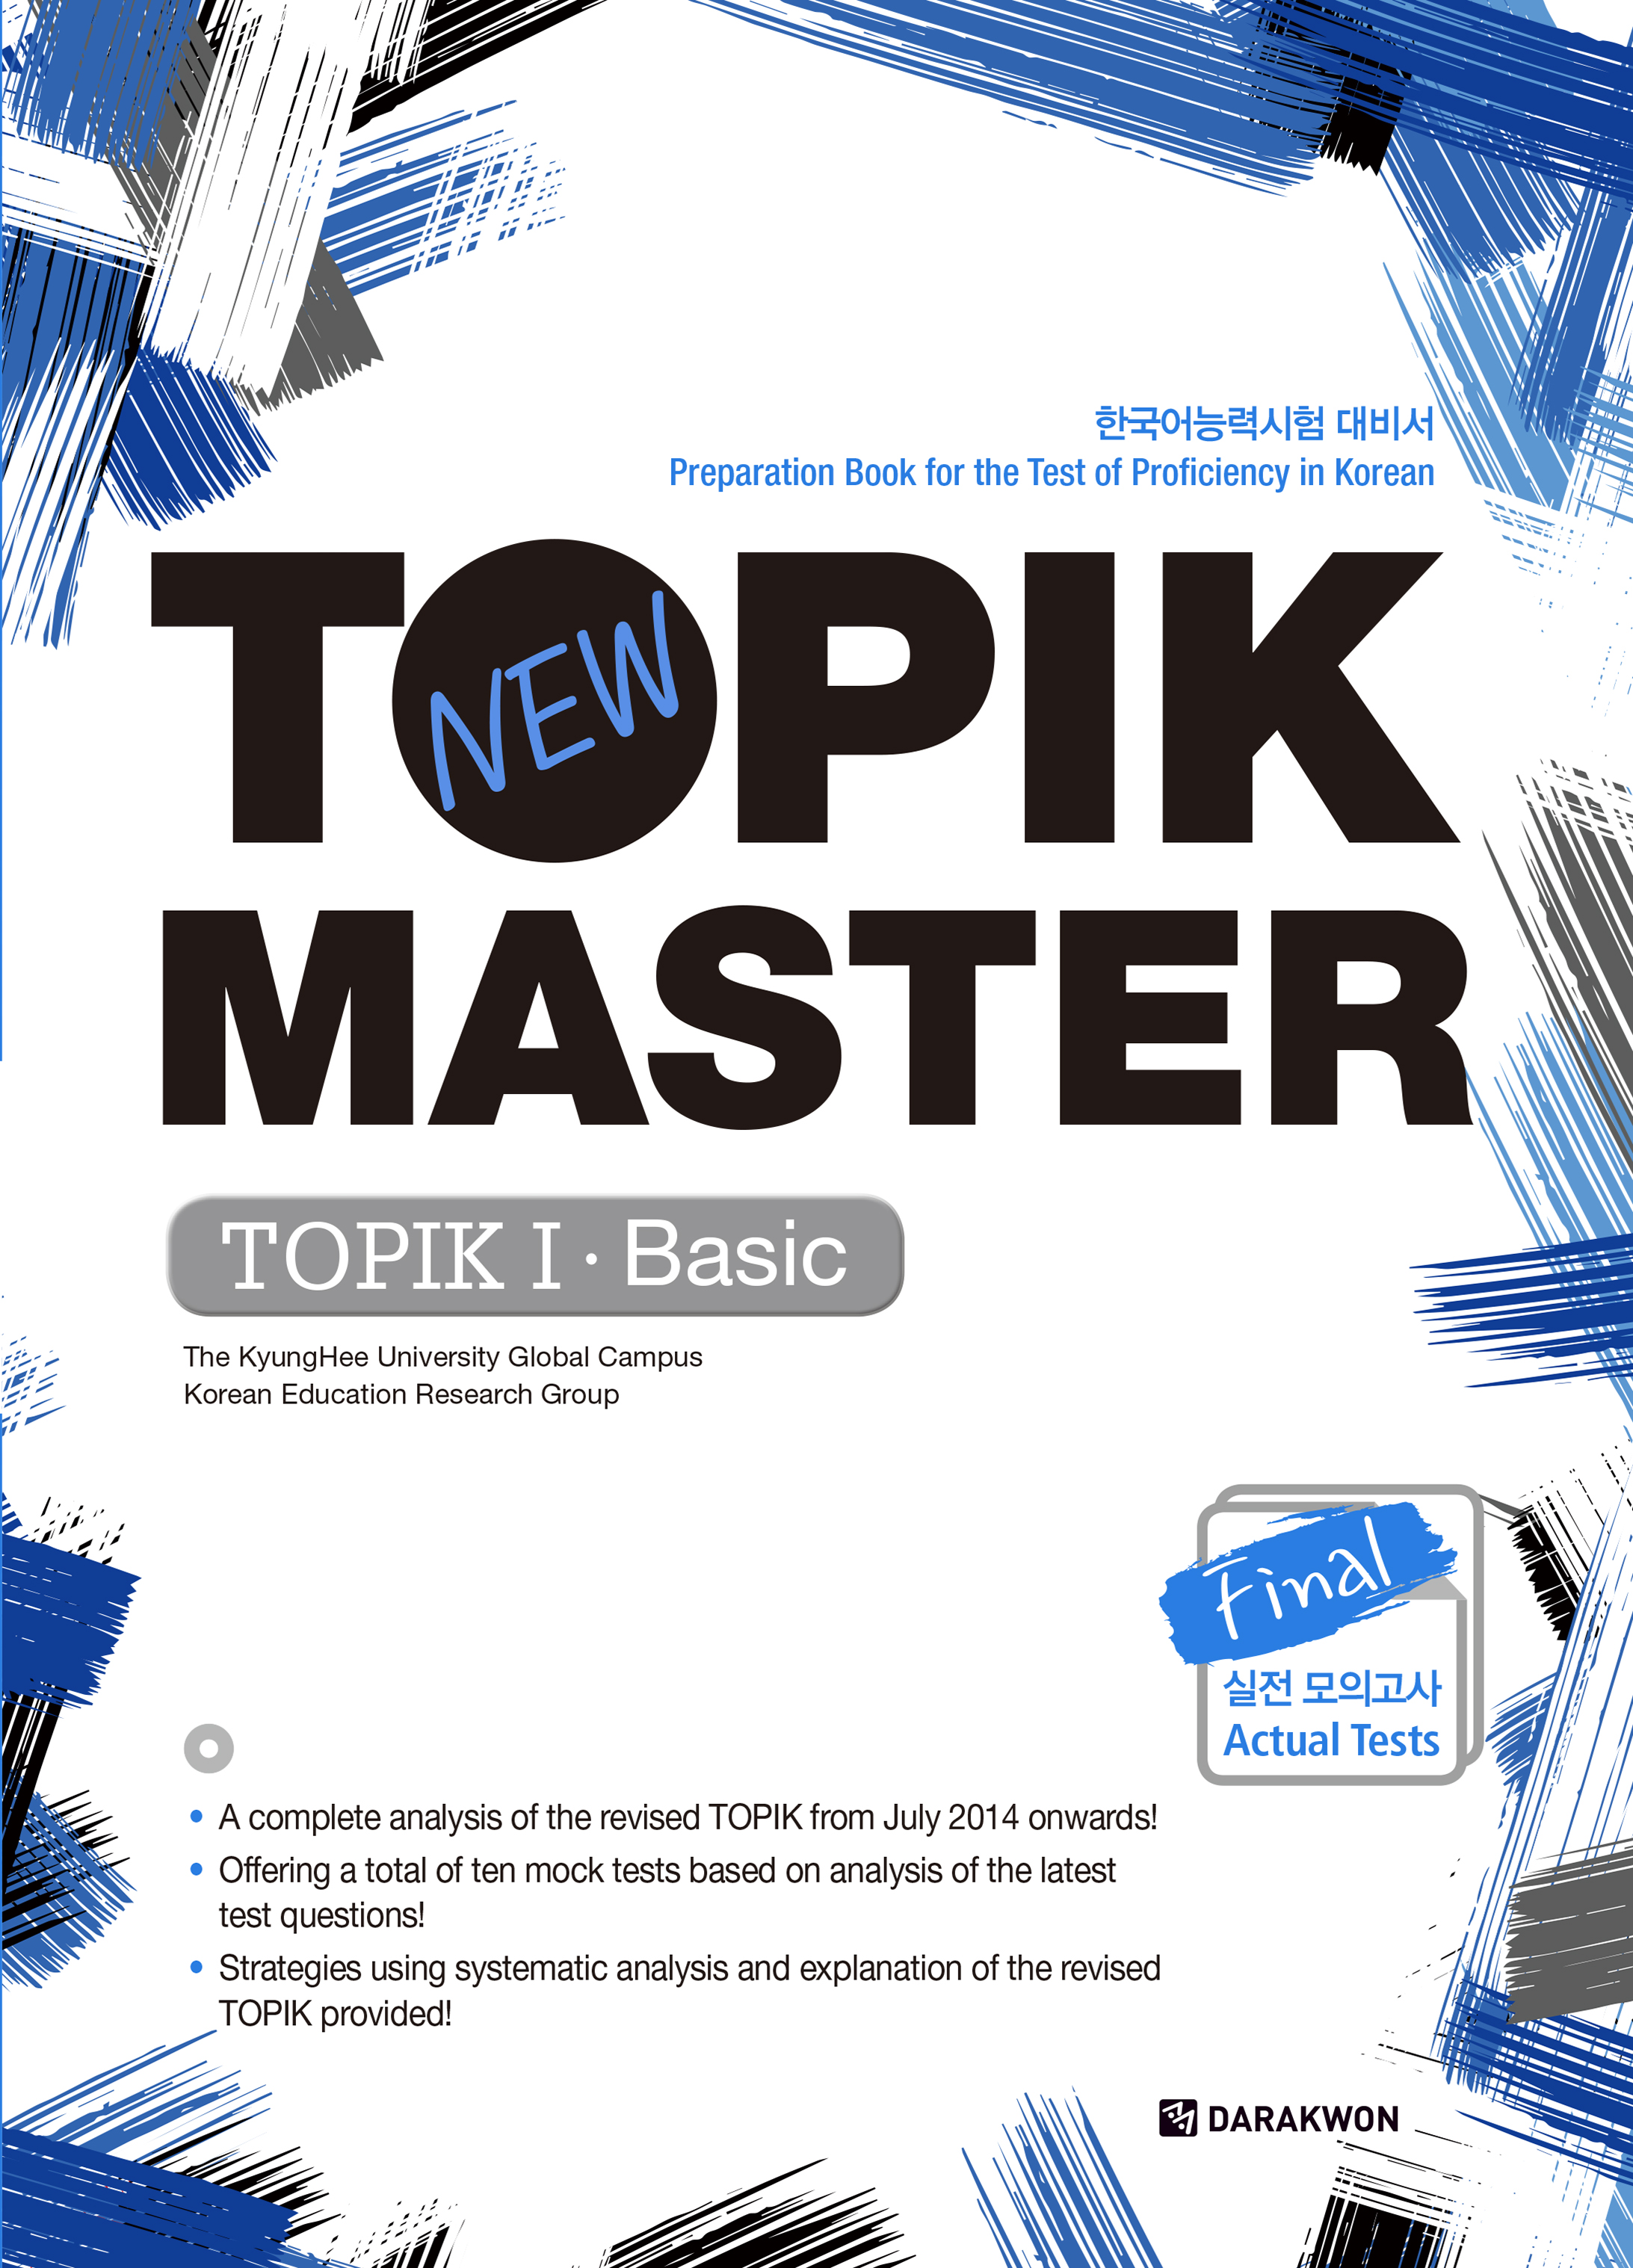 [New TOPIK MASTER] (영어판) New TOPIK MASTER Final 실전 모의고사 TOPIK Ⅰ Basic